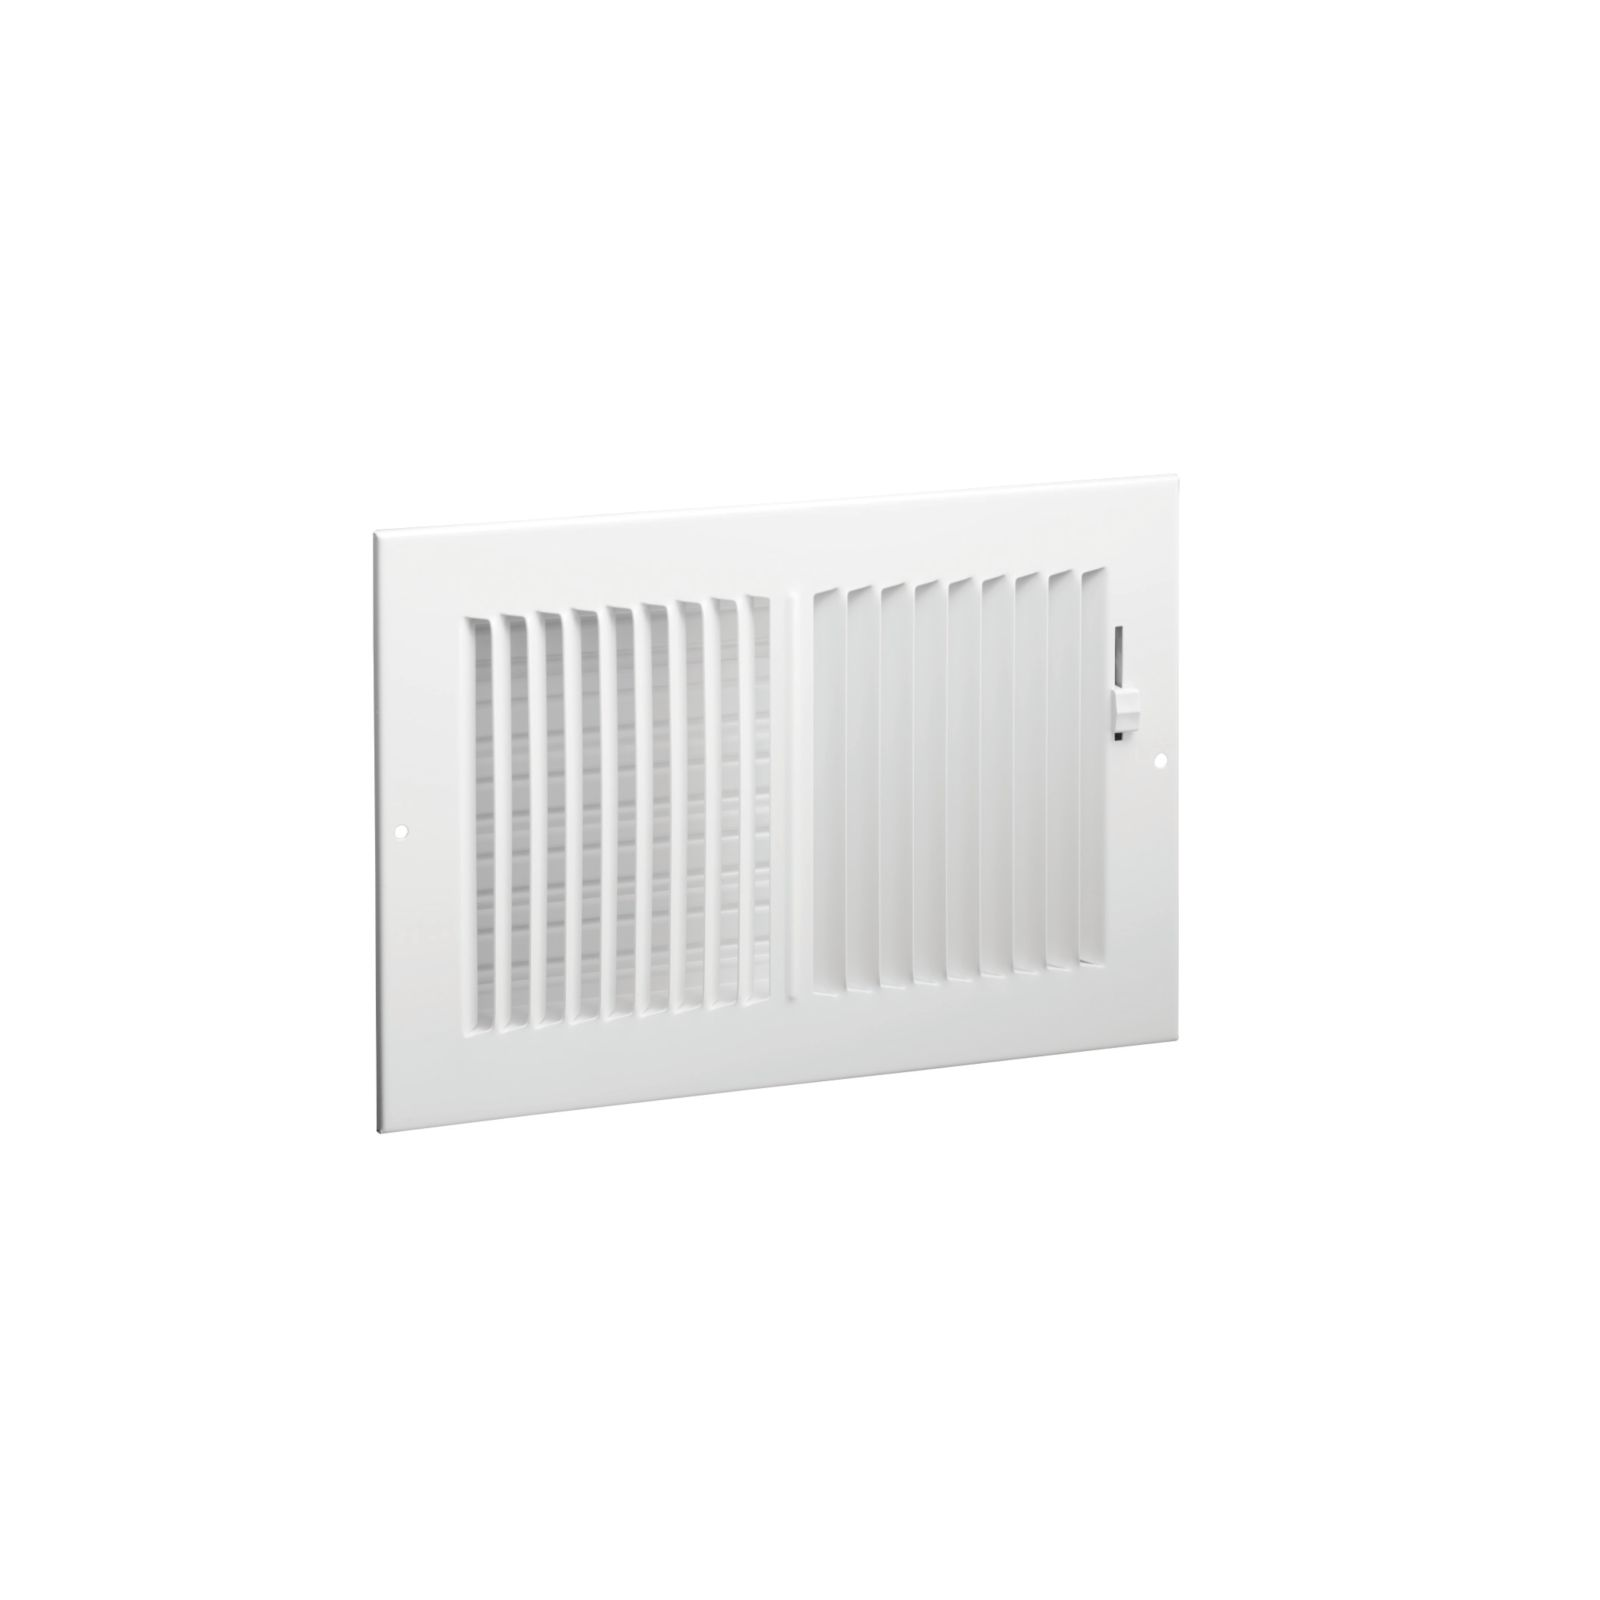 "Hart & Cooley 043840 - #682 Steel 2-Way Sidewall/Ceiling Register, Multi-Shutter Damper with Plastic Handle, White, 14"" X 4"""